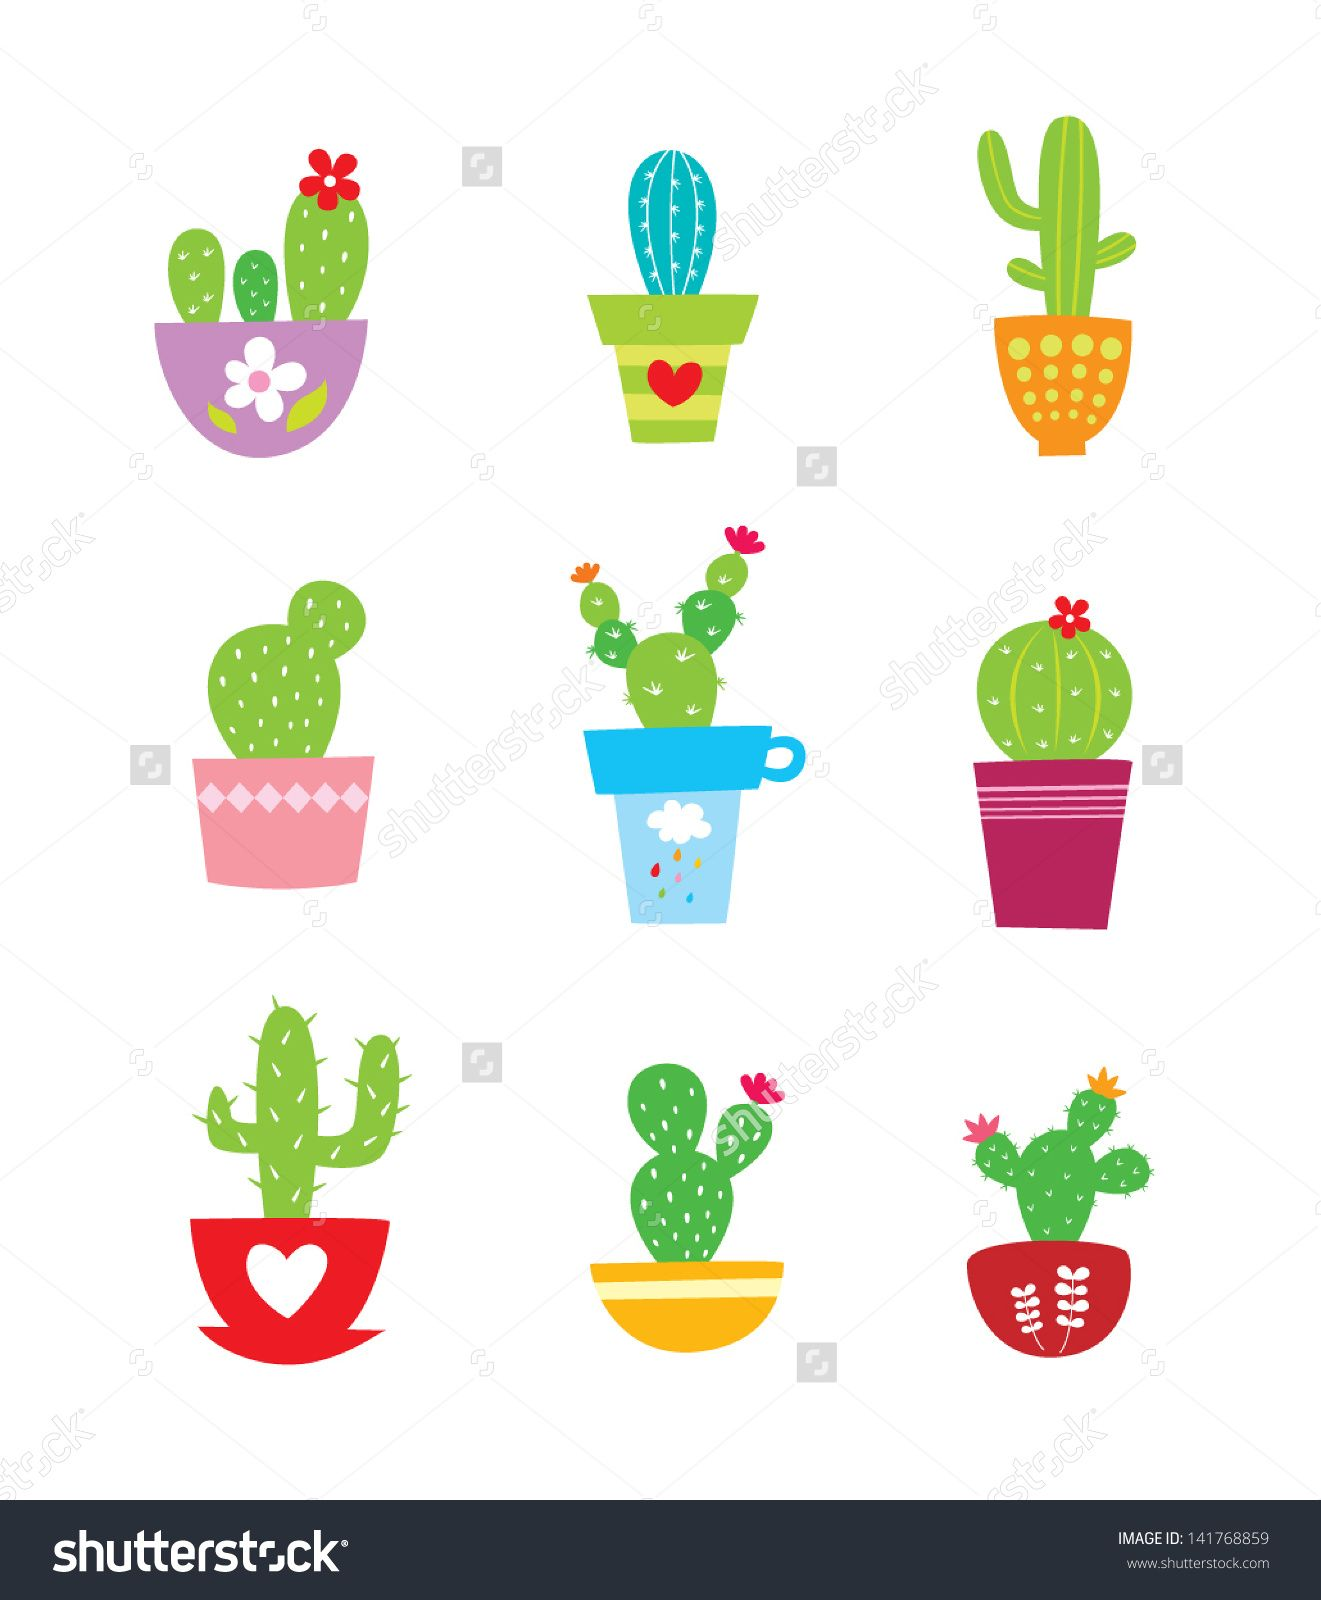 Cactus plant vector buy this stock vector on shutterstock find other images